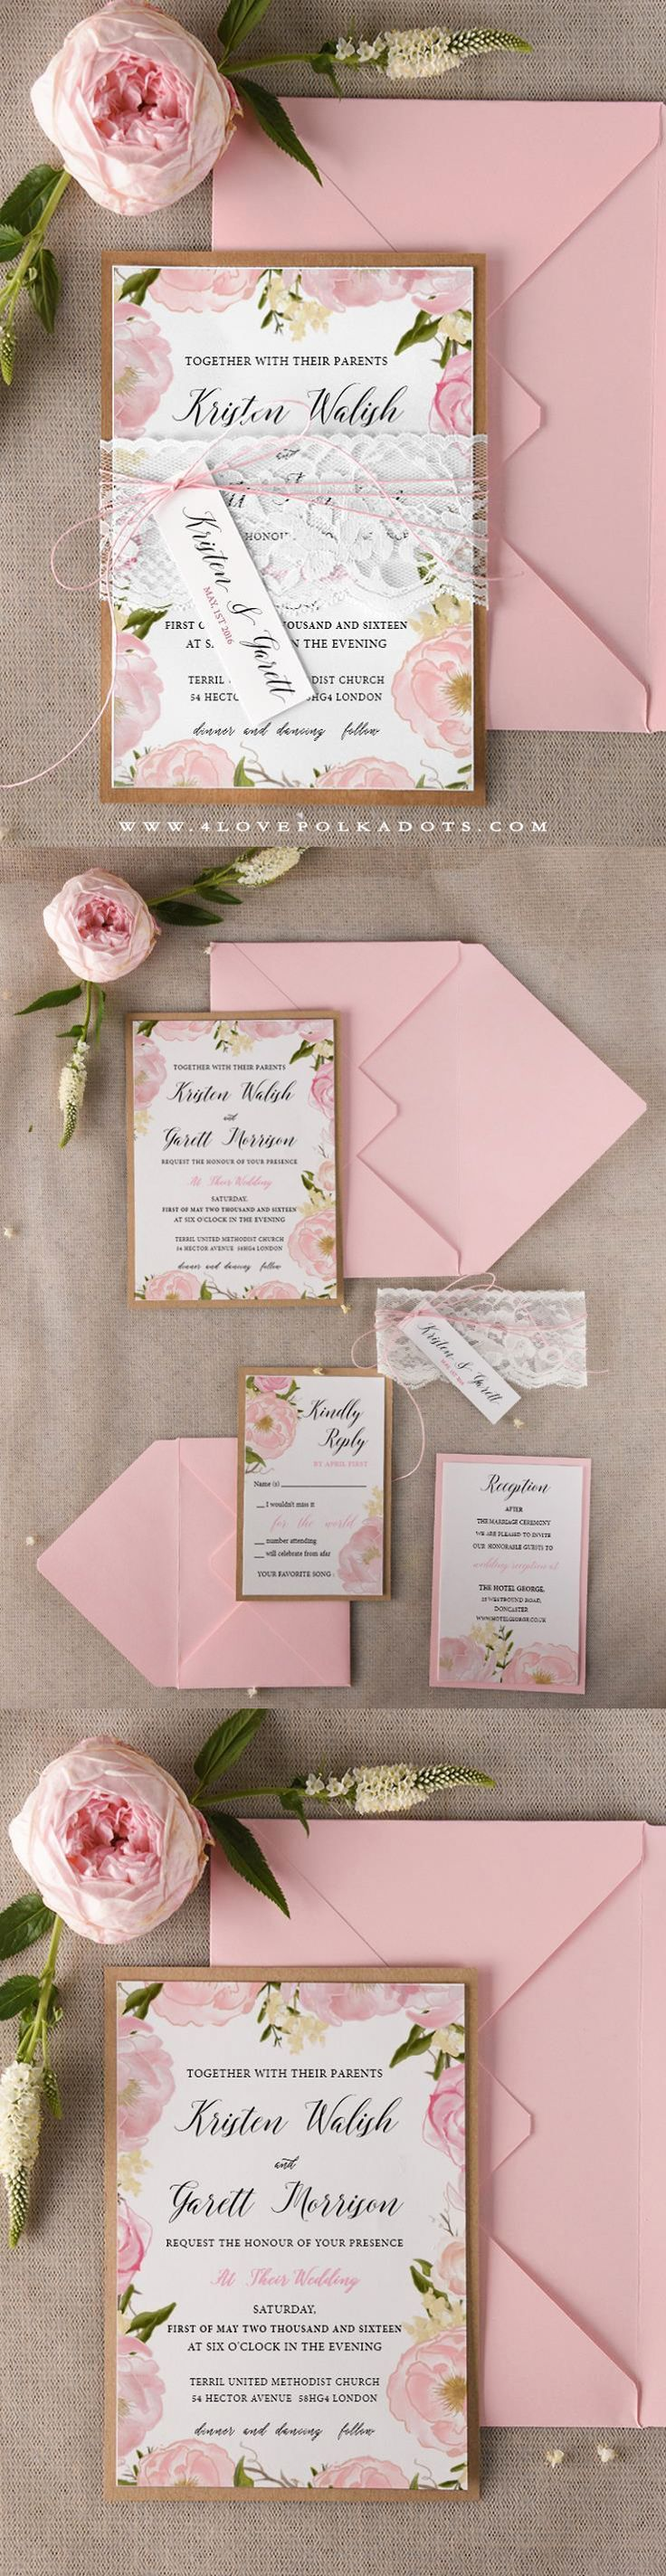 Floral Wedding Invitation With Real Lace Handmade Summerwedding Weddingideas Floral Wedding Invitations Wedding Invitation Sets Handmade Wedding Invitations